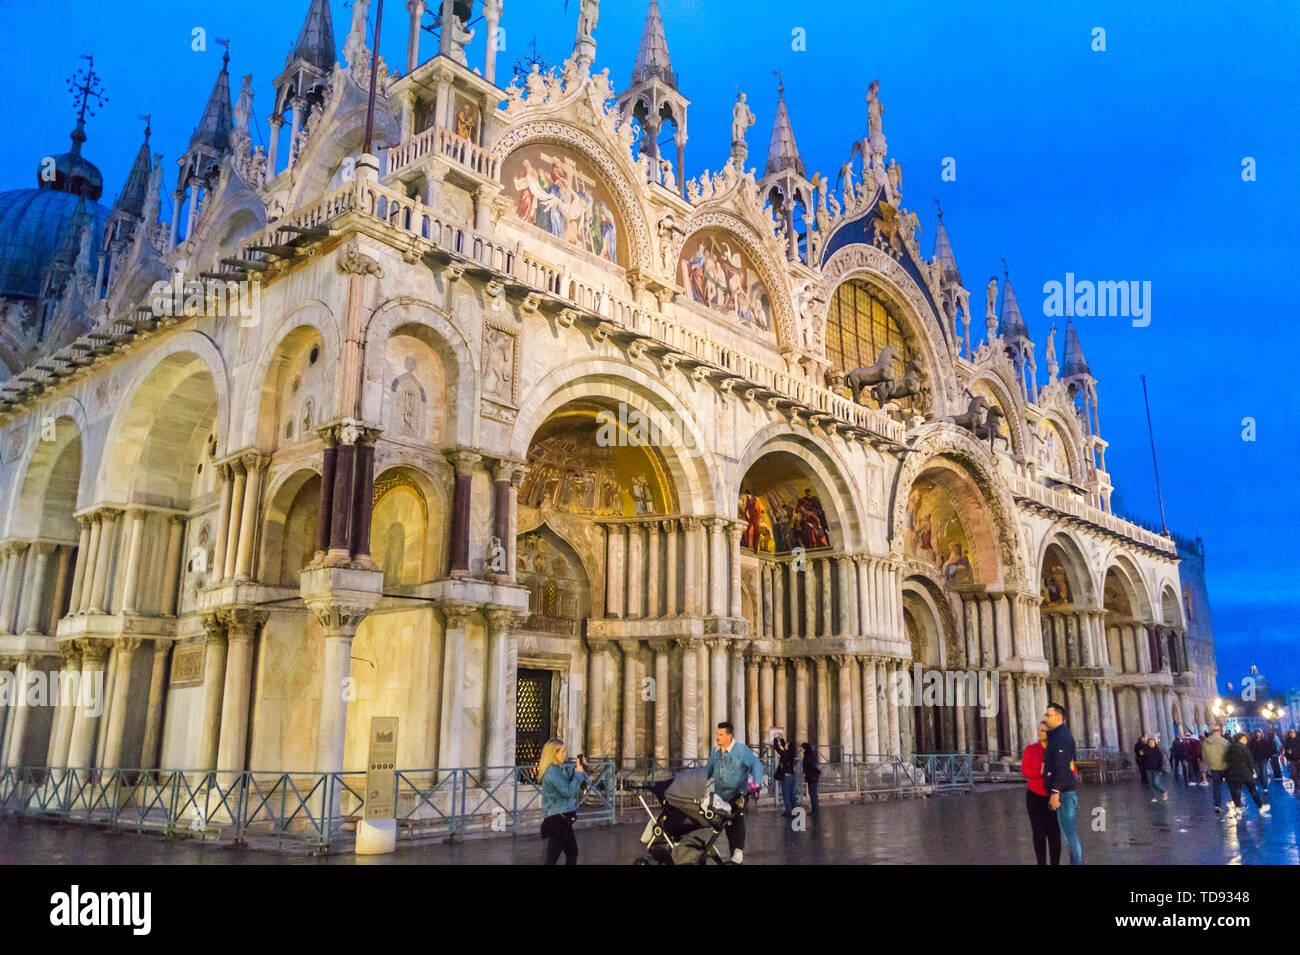 basilica-of-san-marco-at-night-st-marks-square-san-marco-venice-veneto-italy-TD9348.jpg